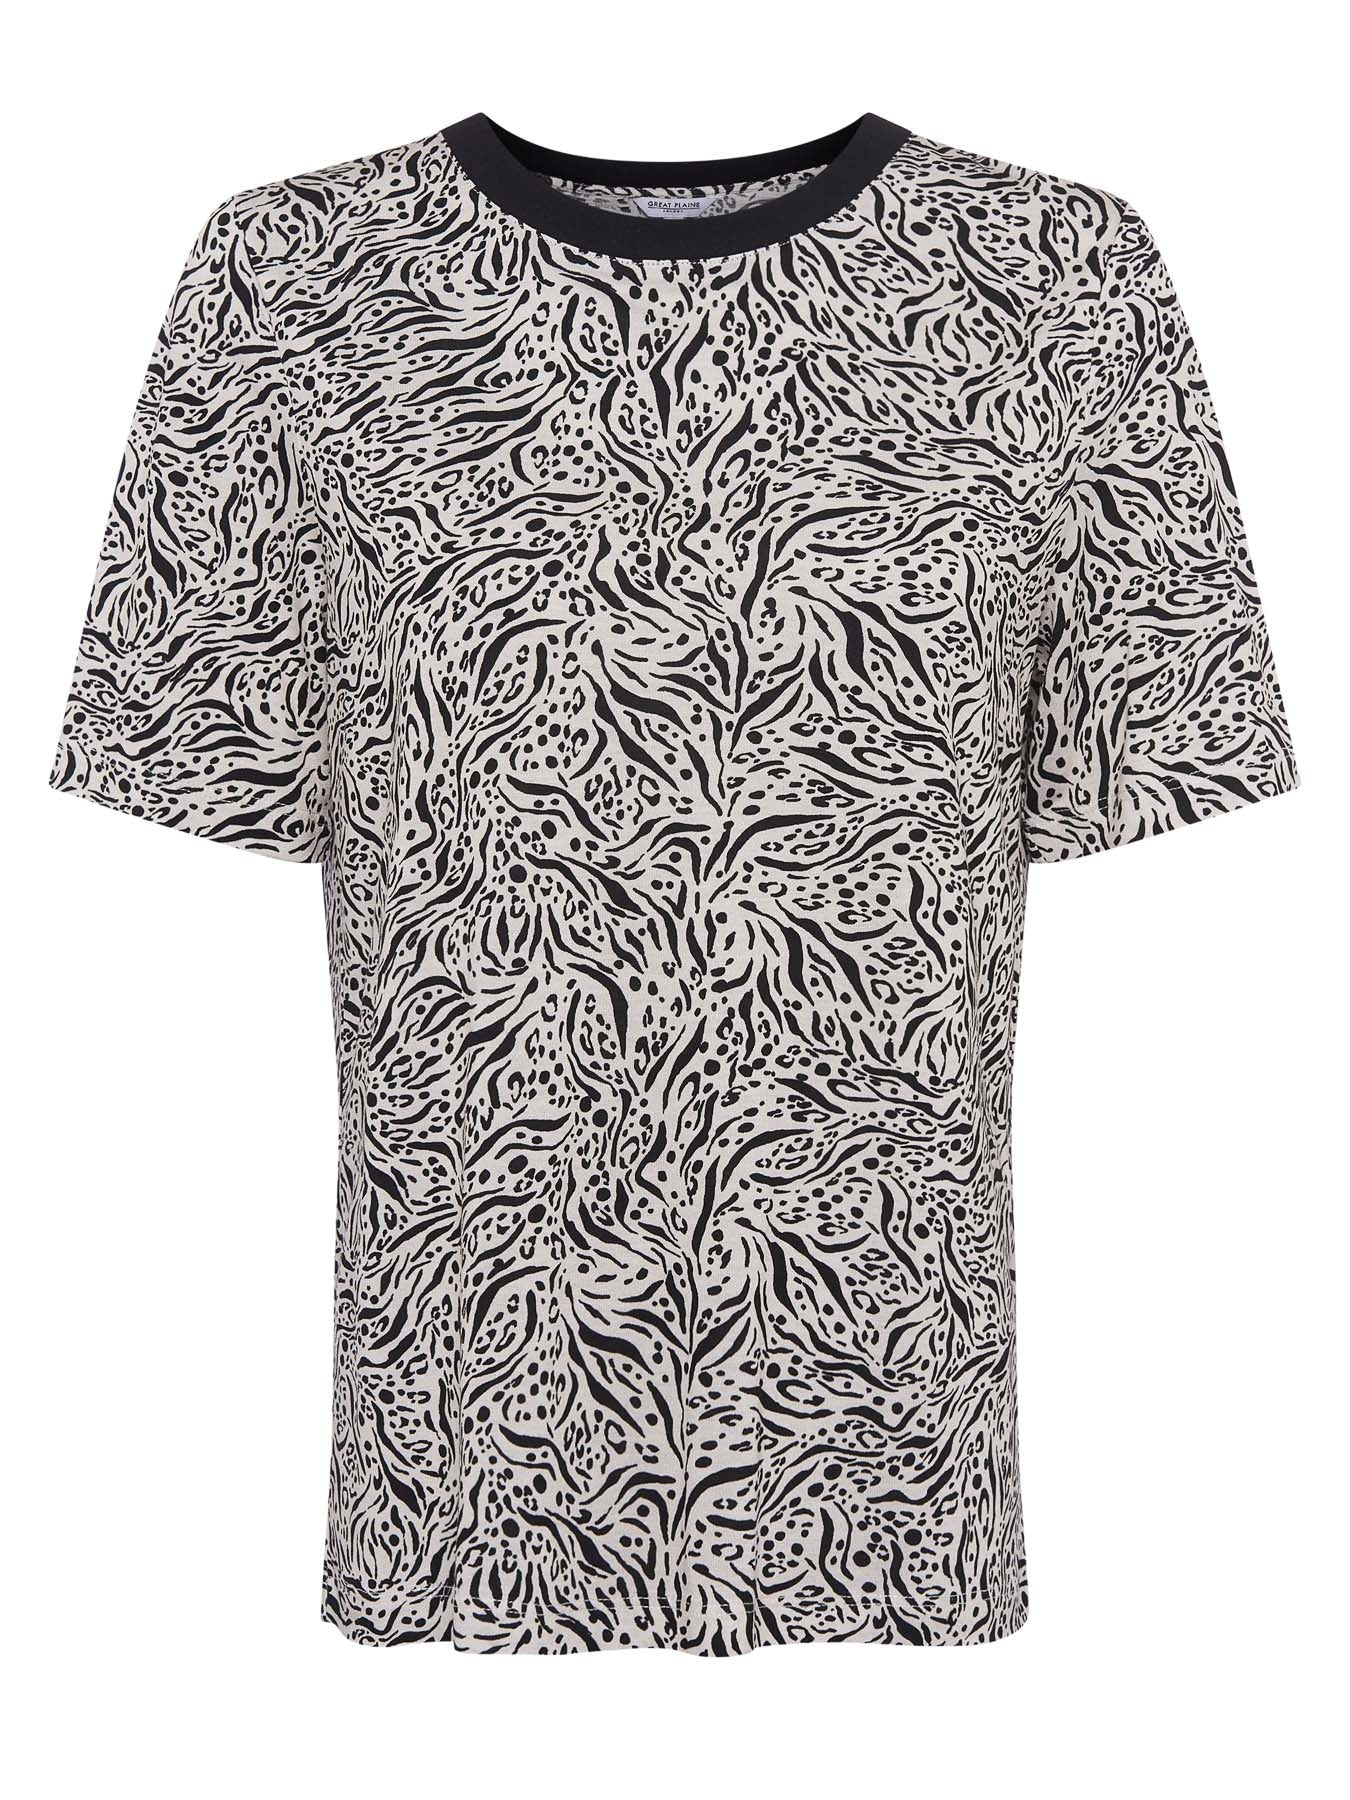 Great Plains Javan Print Tee for Ladies in Black / White